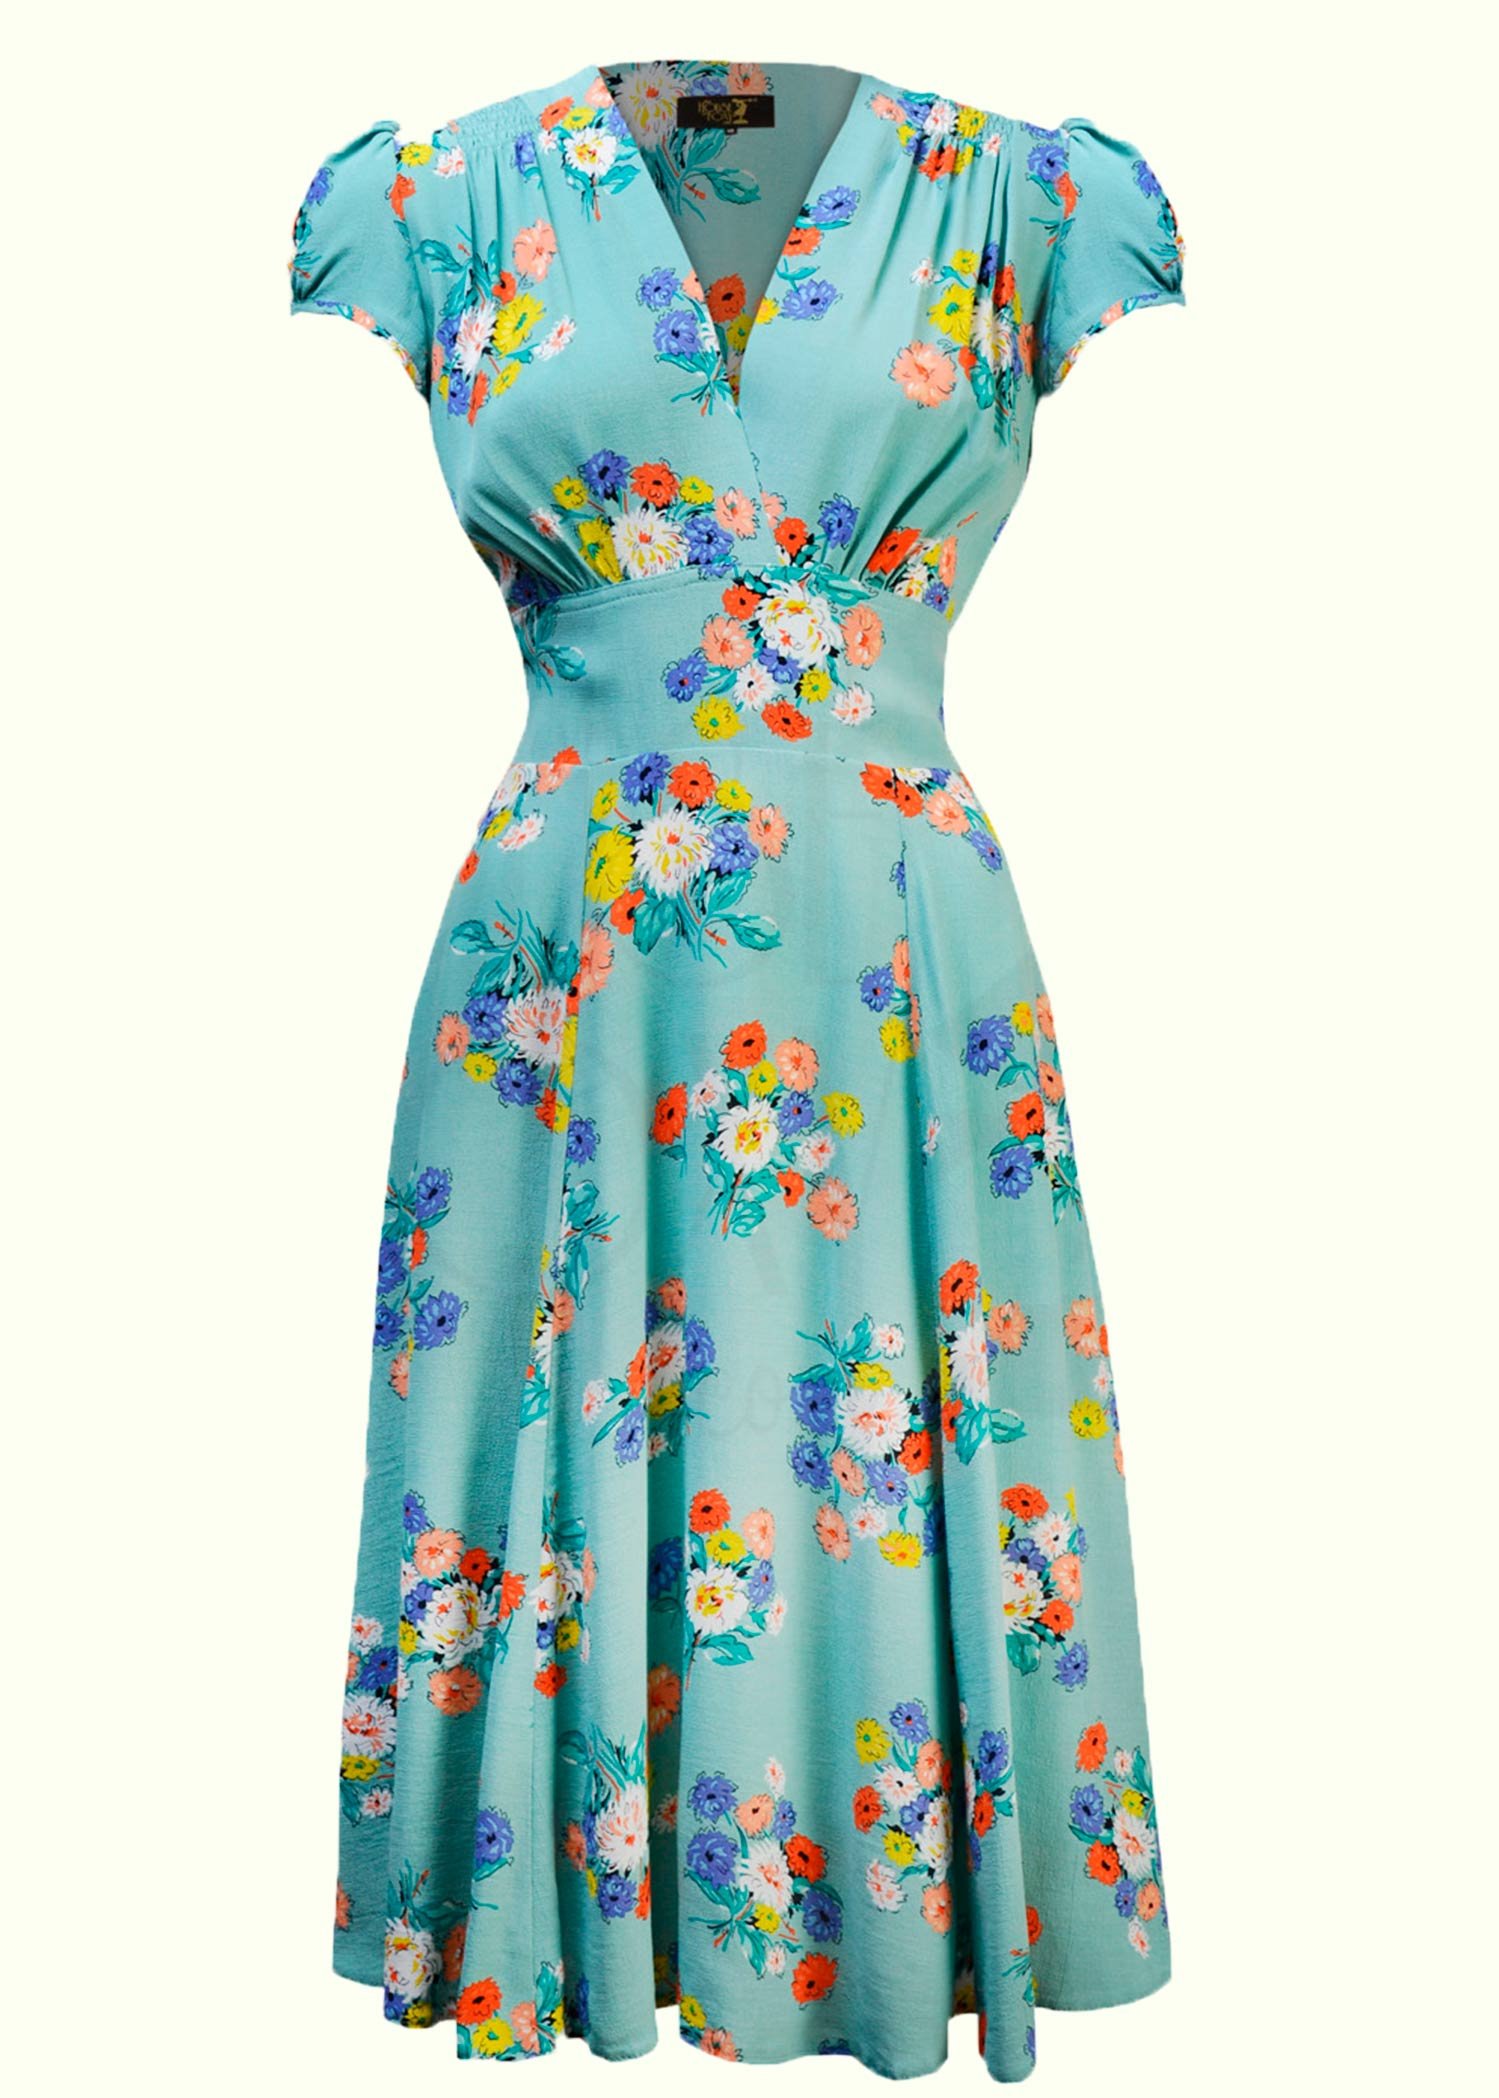 Light blue dress from House Of Foxy in a nice 40s cut with blossoms